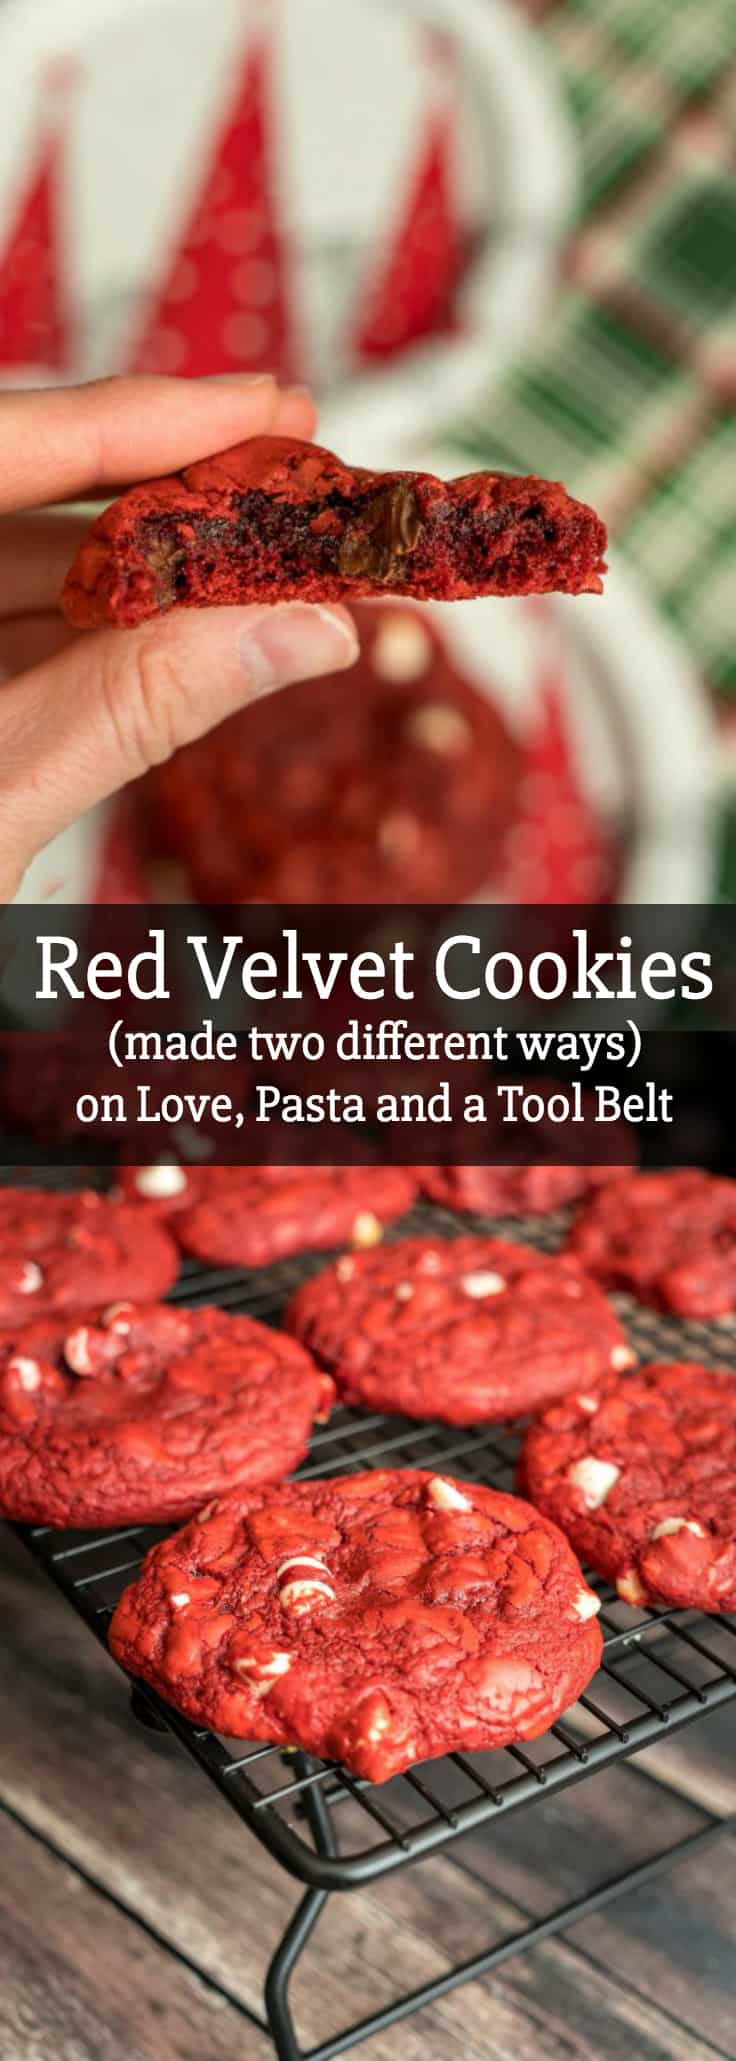 How To Make Red Velvet Cookies Two Different Ways Love